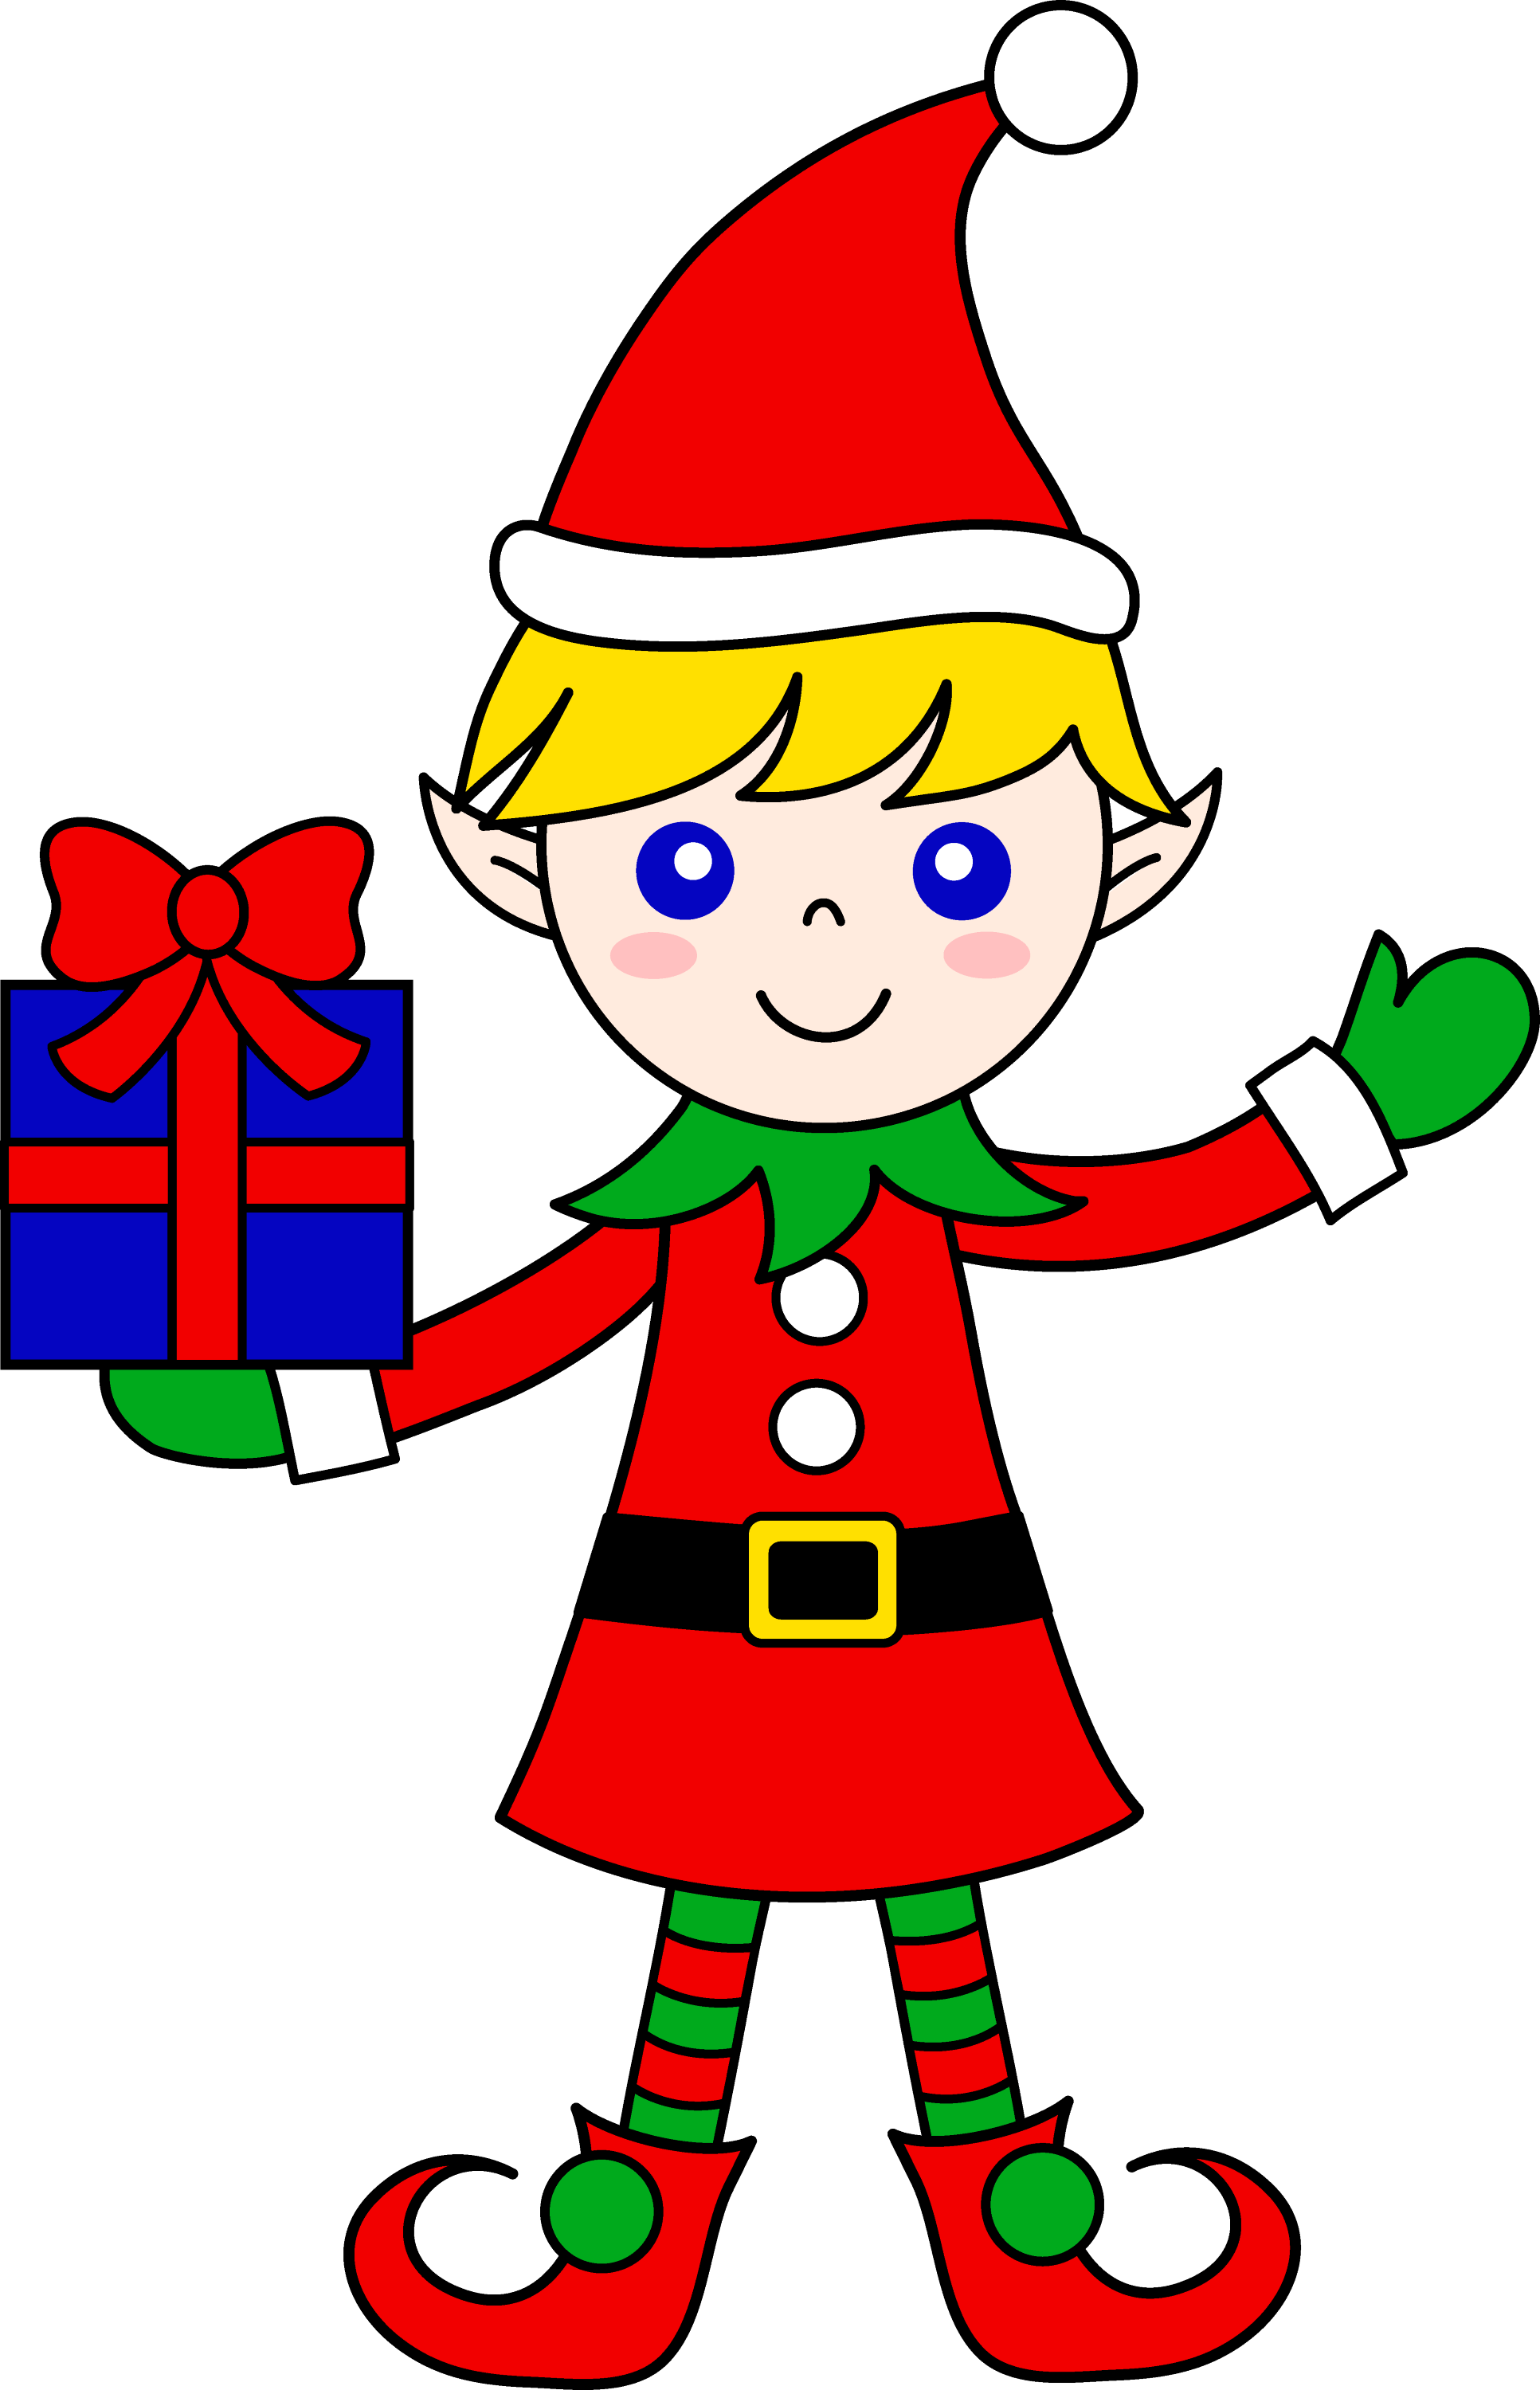 Cute Christmas Elf With Gift - Free Clip Art